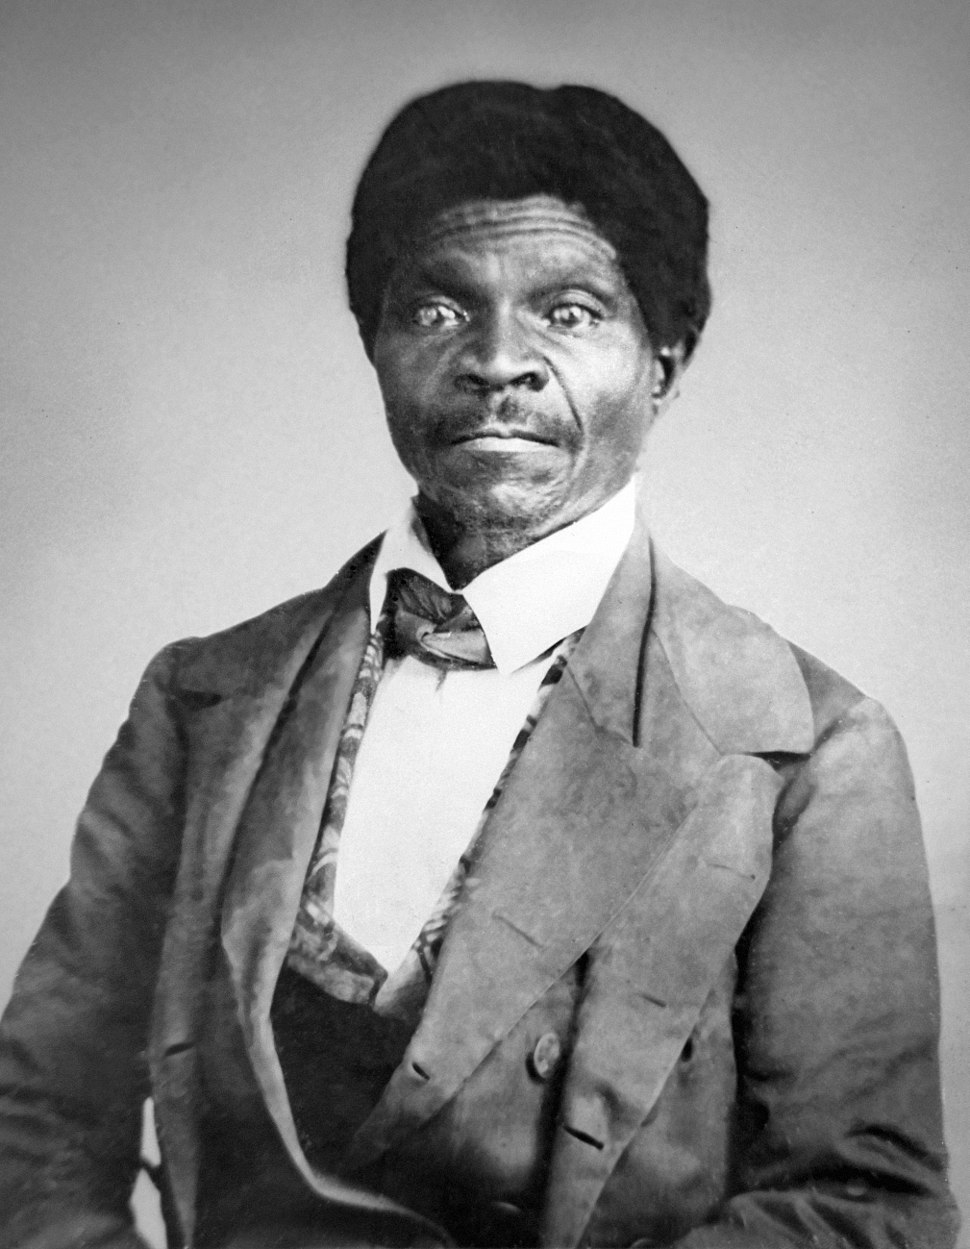 Dred Scott photograph (circa 1857)